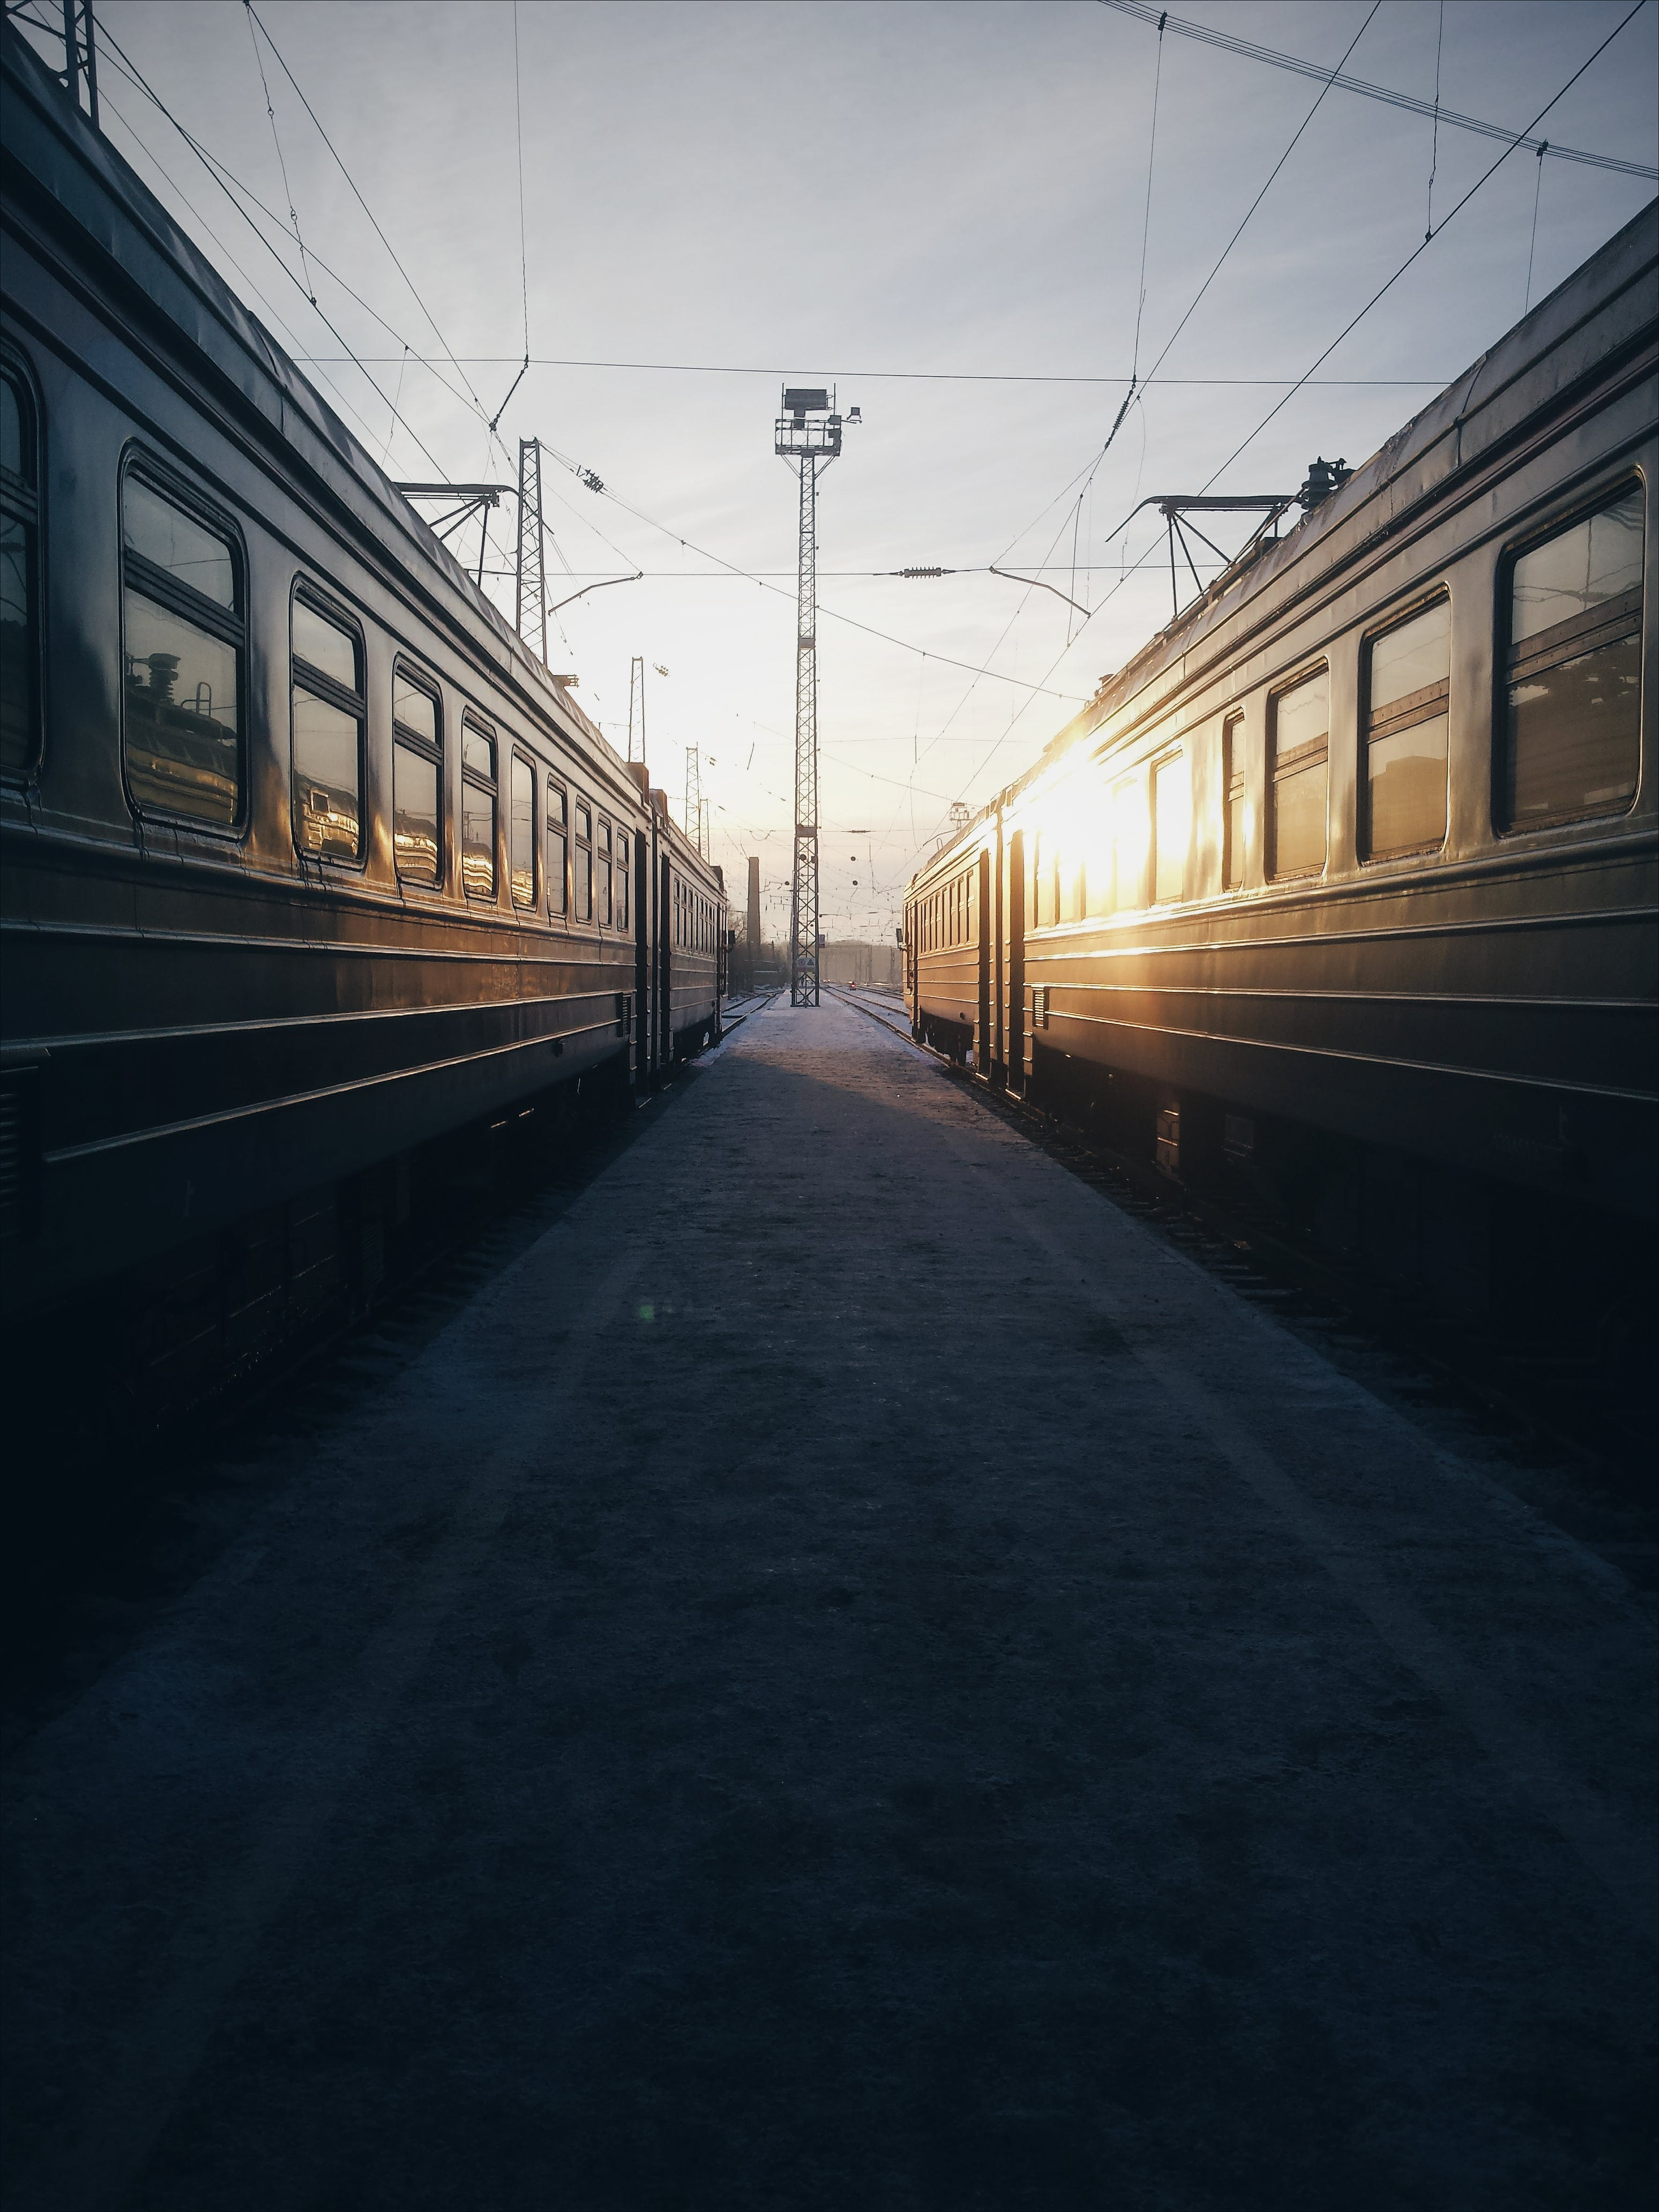 Train During Golden Hour